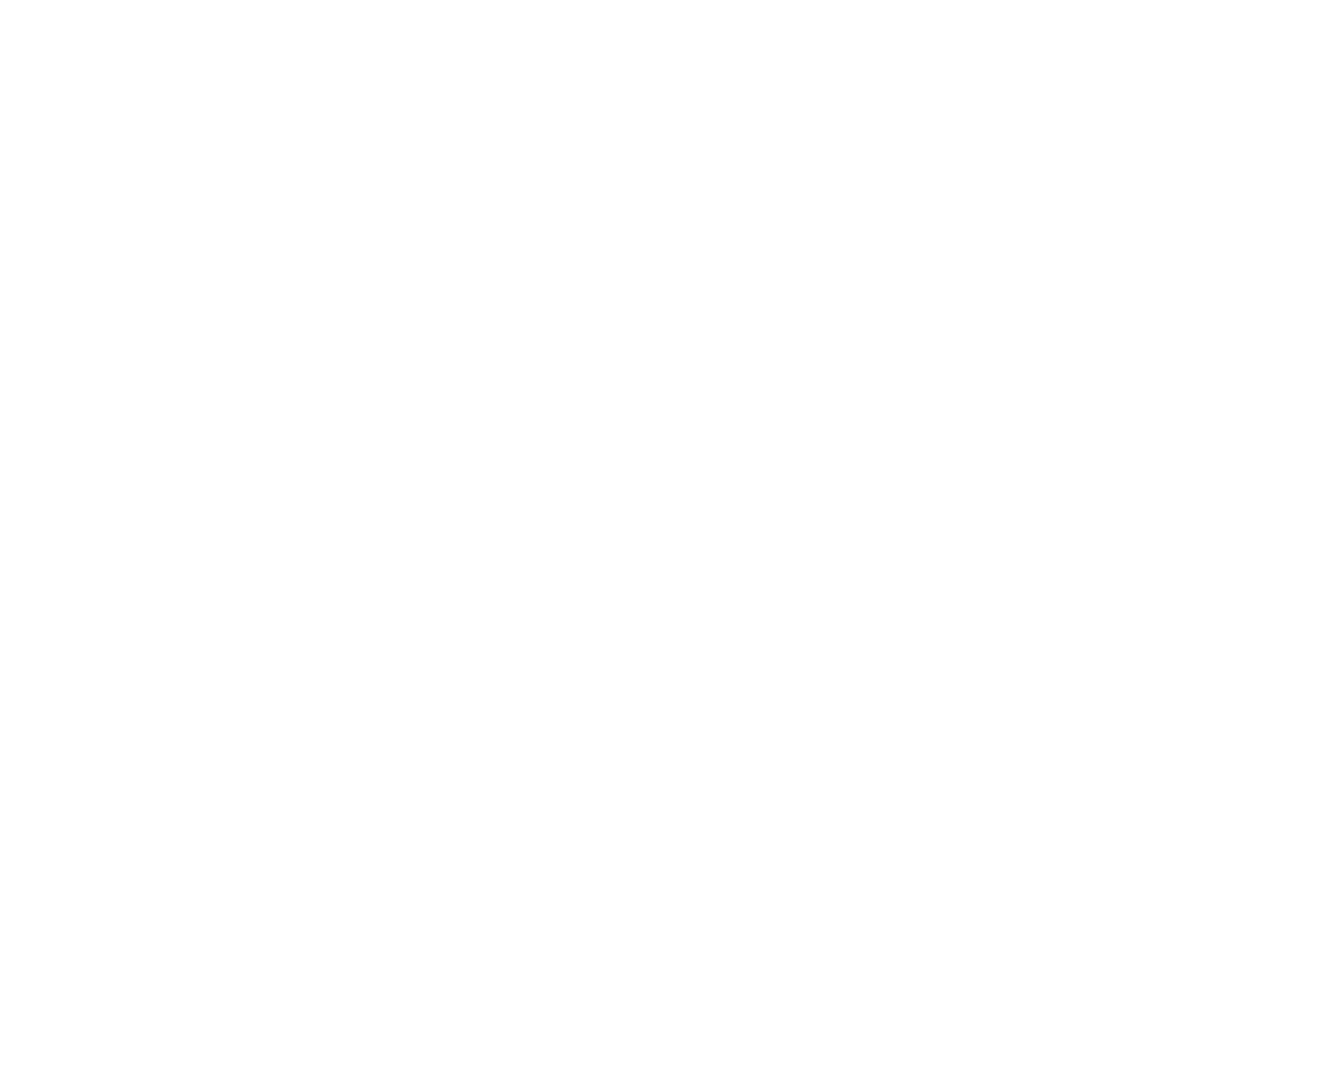 Rochester Victory Alliance logo